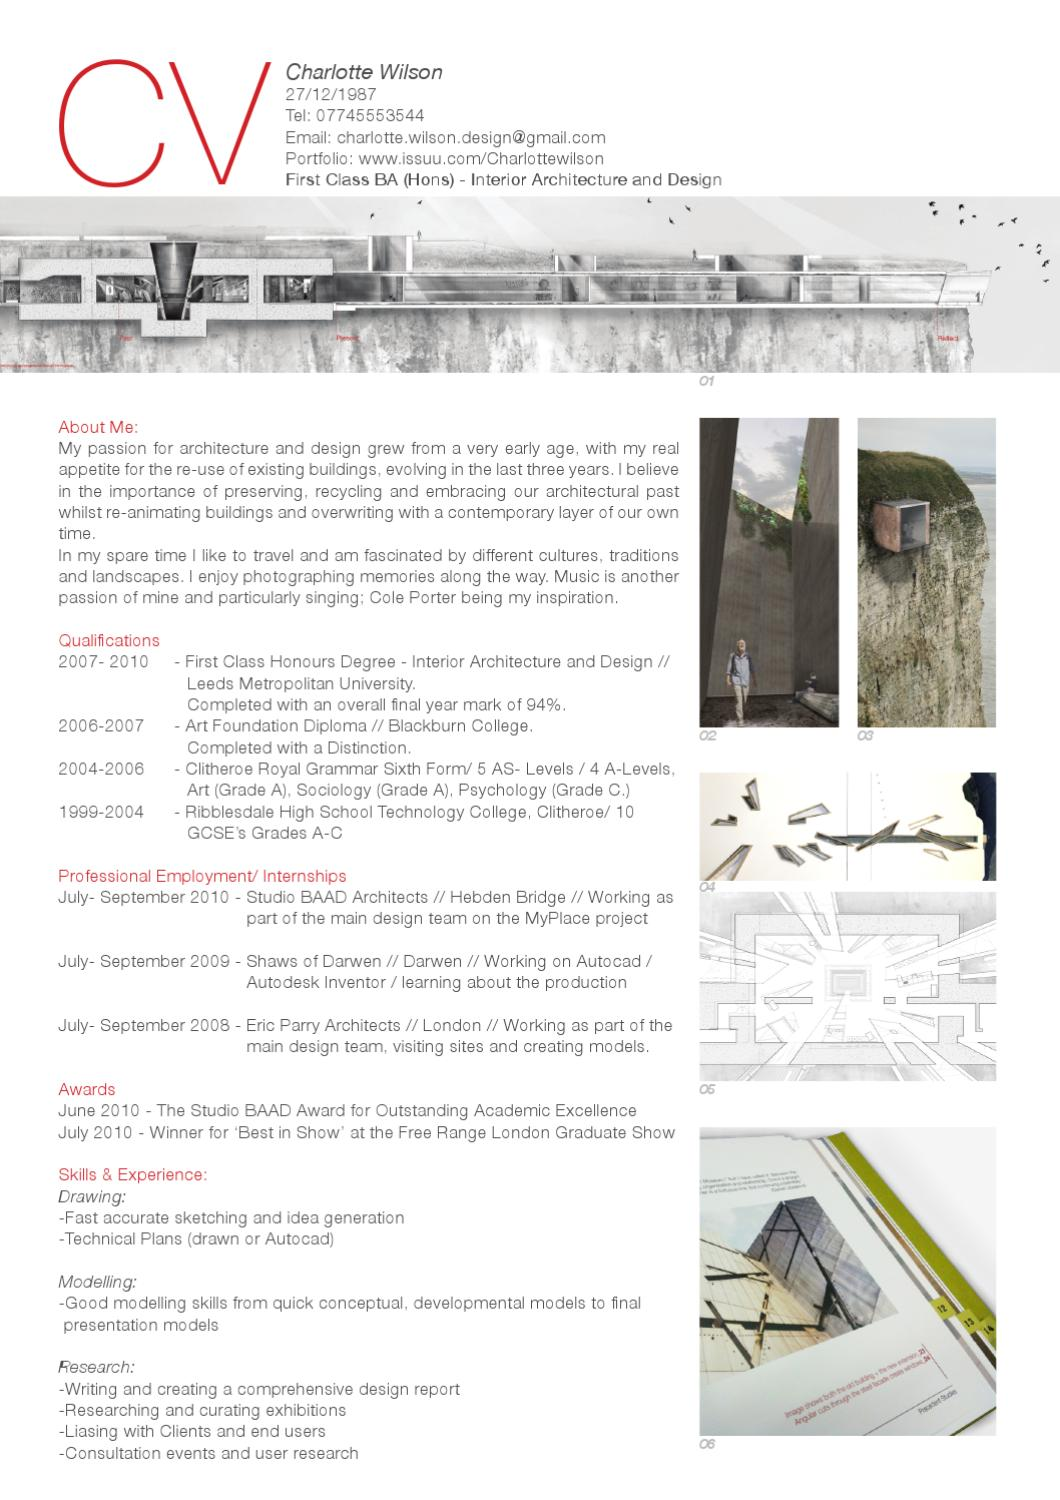 Curriculum Vitae By Charlotte Wilson   Issuu  Landscape Architect Resume